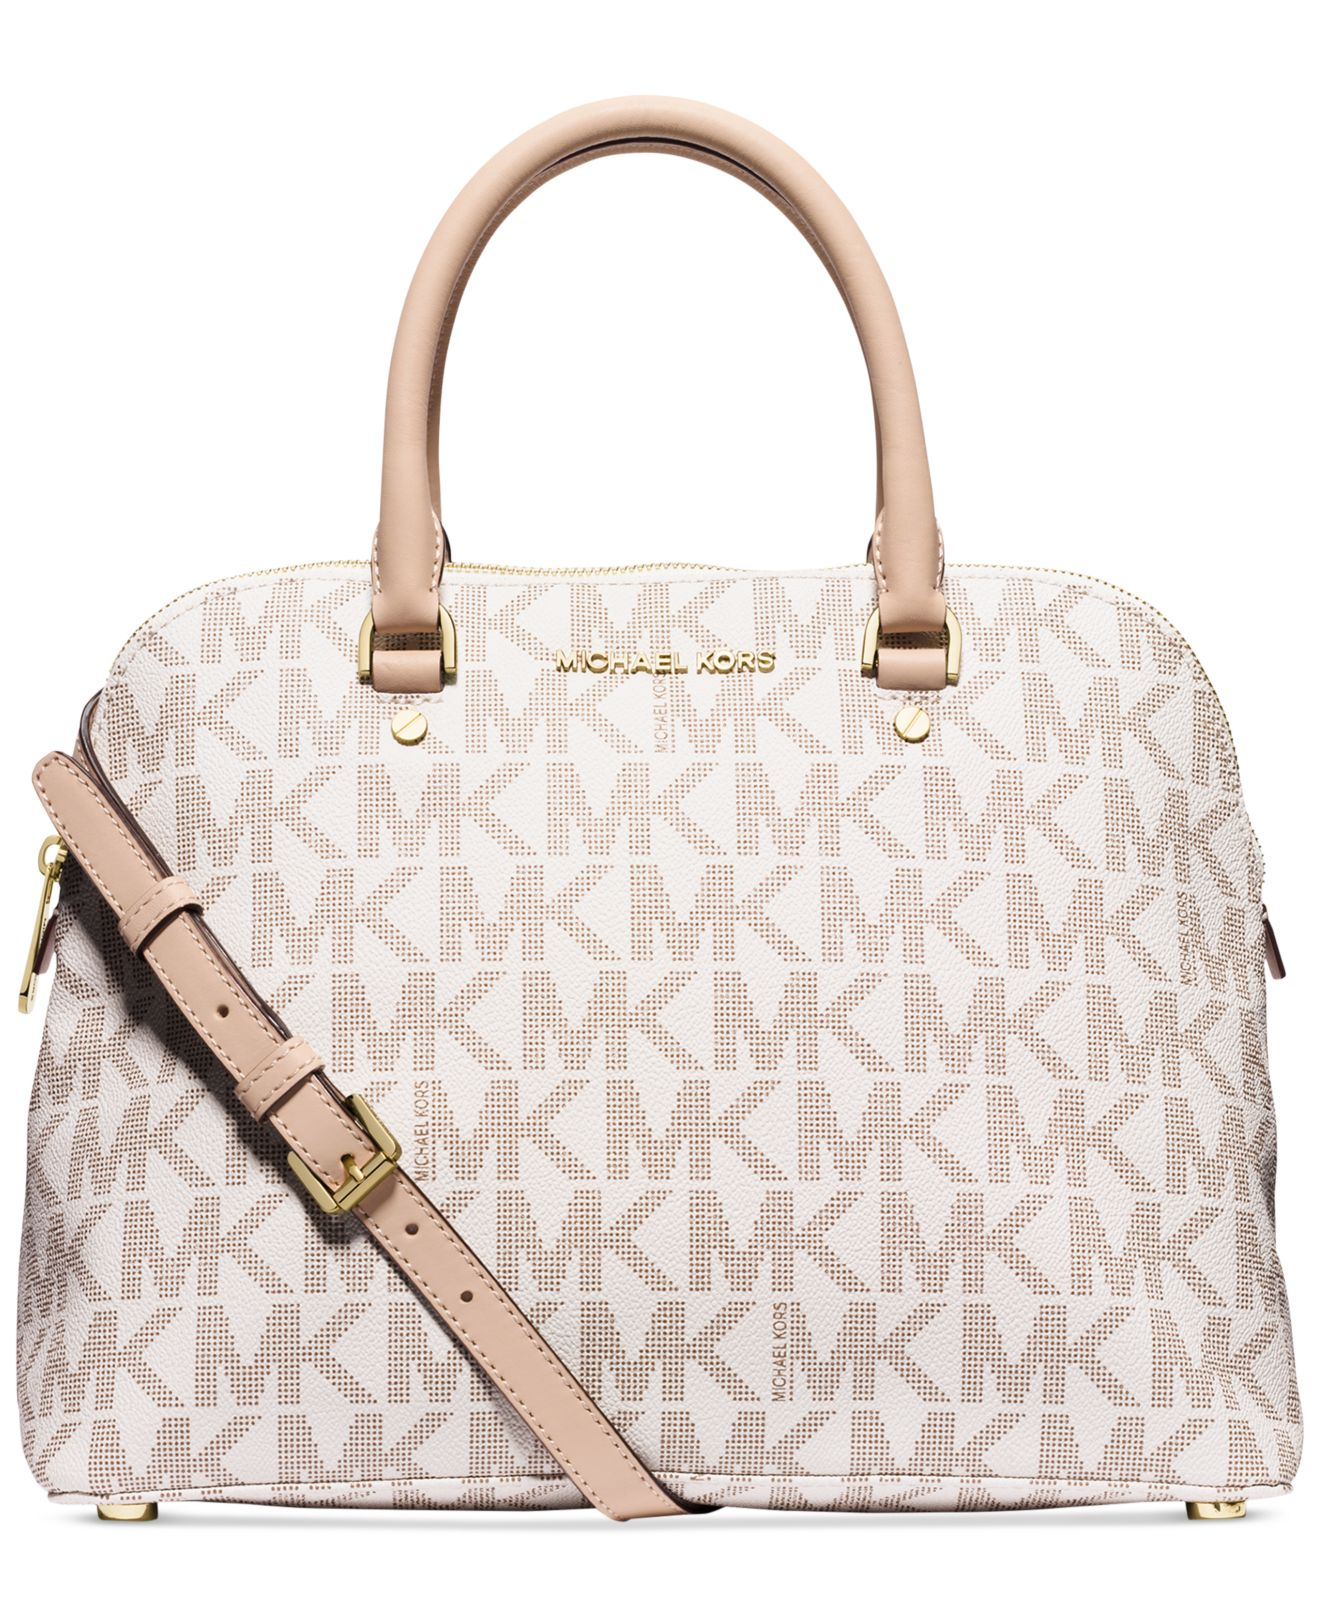 ee25a3d43d1a58 ... canada lyst michael kors michael cindy large dome satchel in natural  2bc57 2e49f